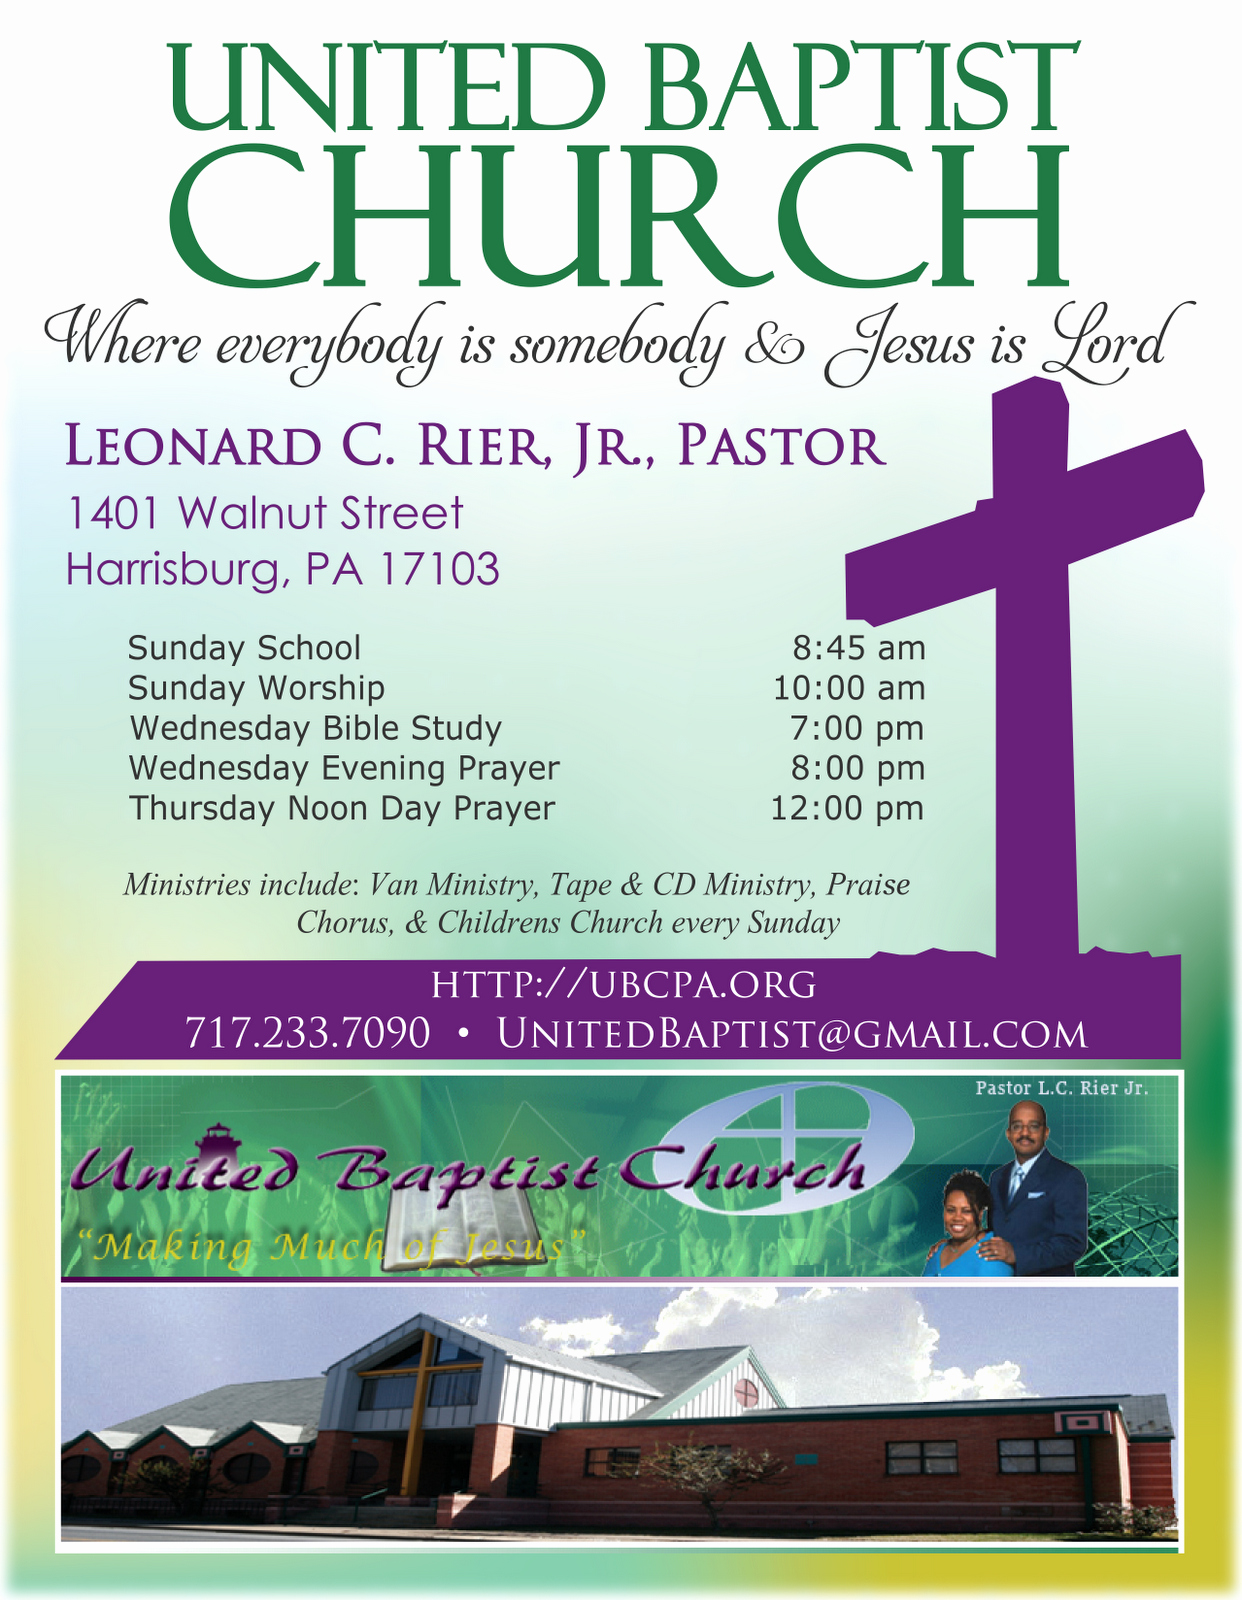 Invitation to Church Service Flyer Fresh Church Flyer Design Adazing Design